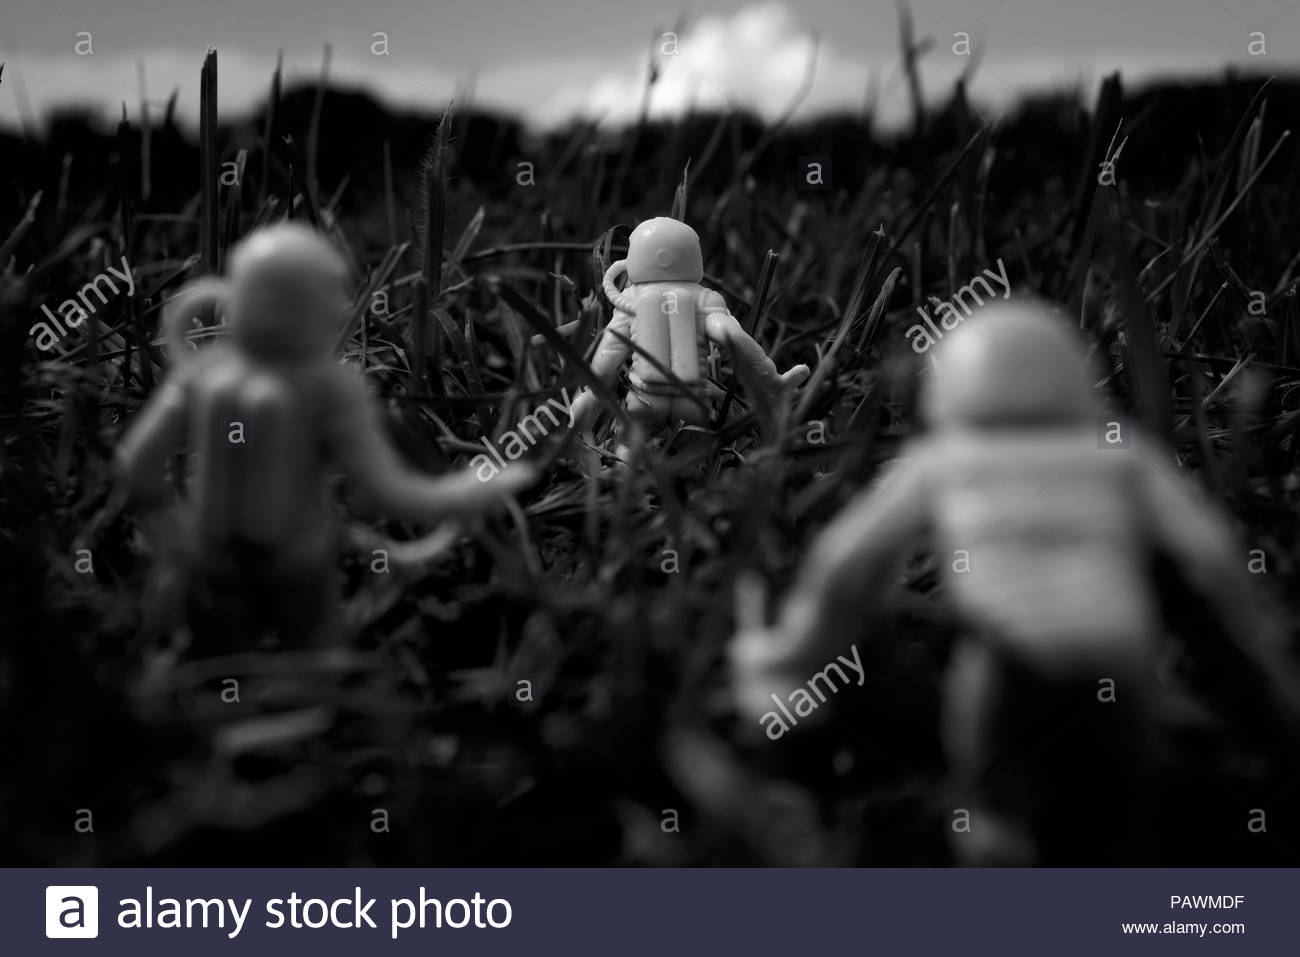 Astronauts walking in the vegetation of the planet Earth - Stock Image